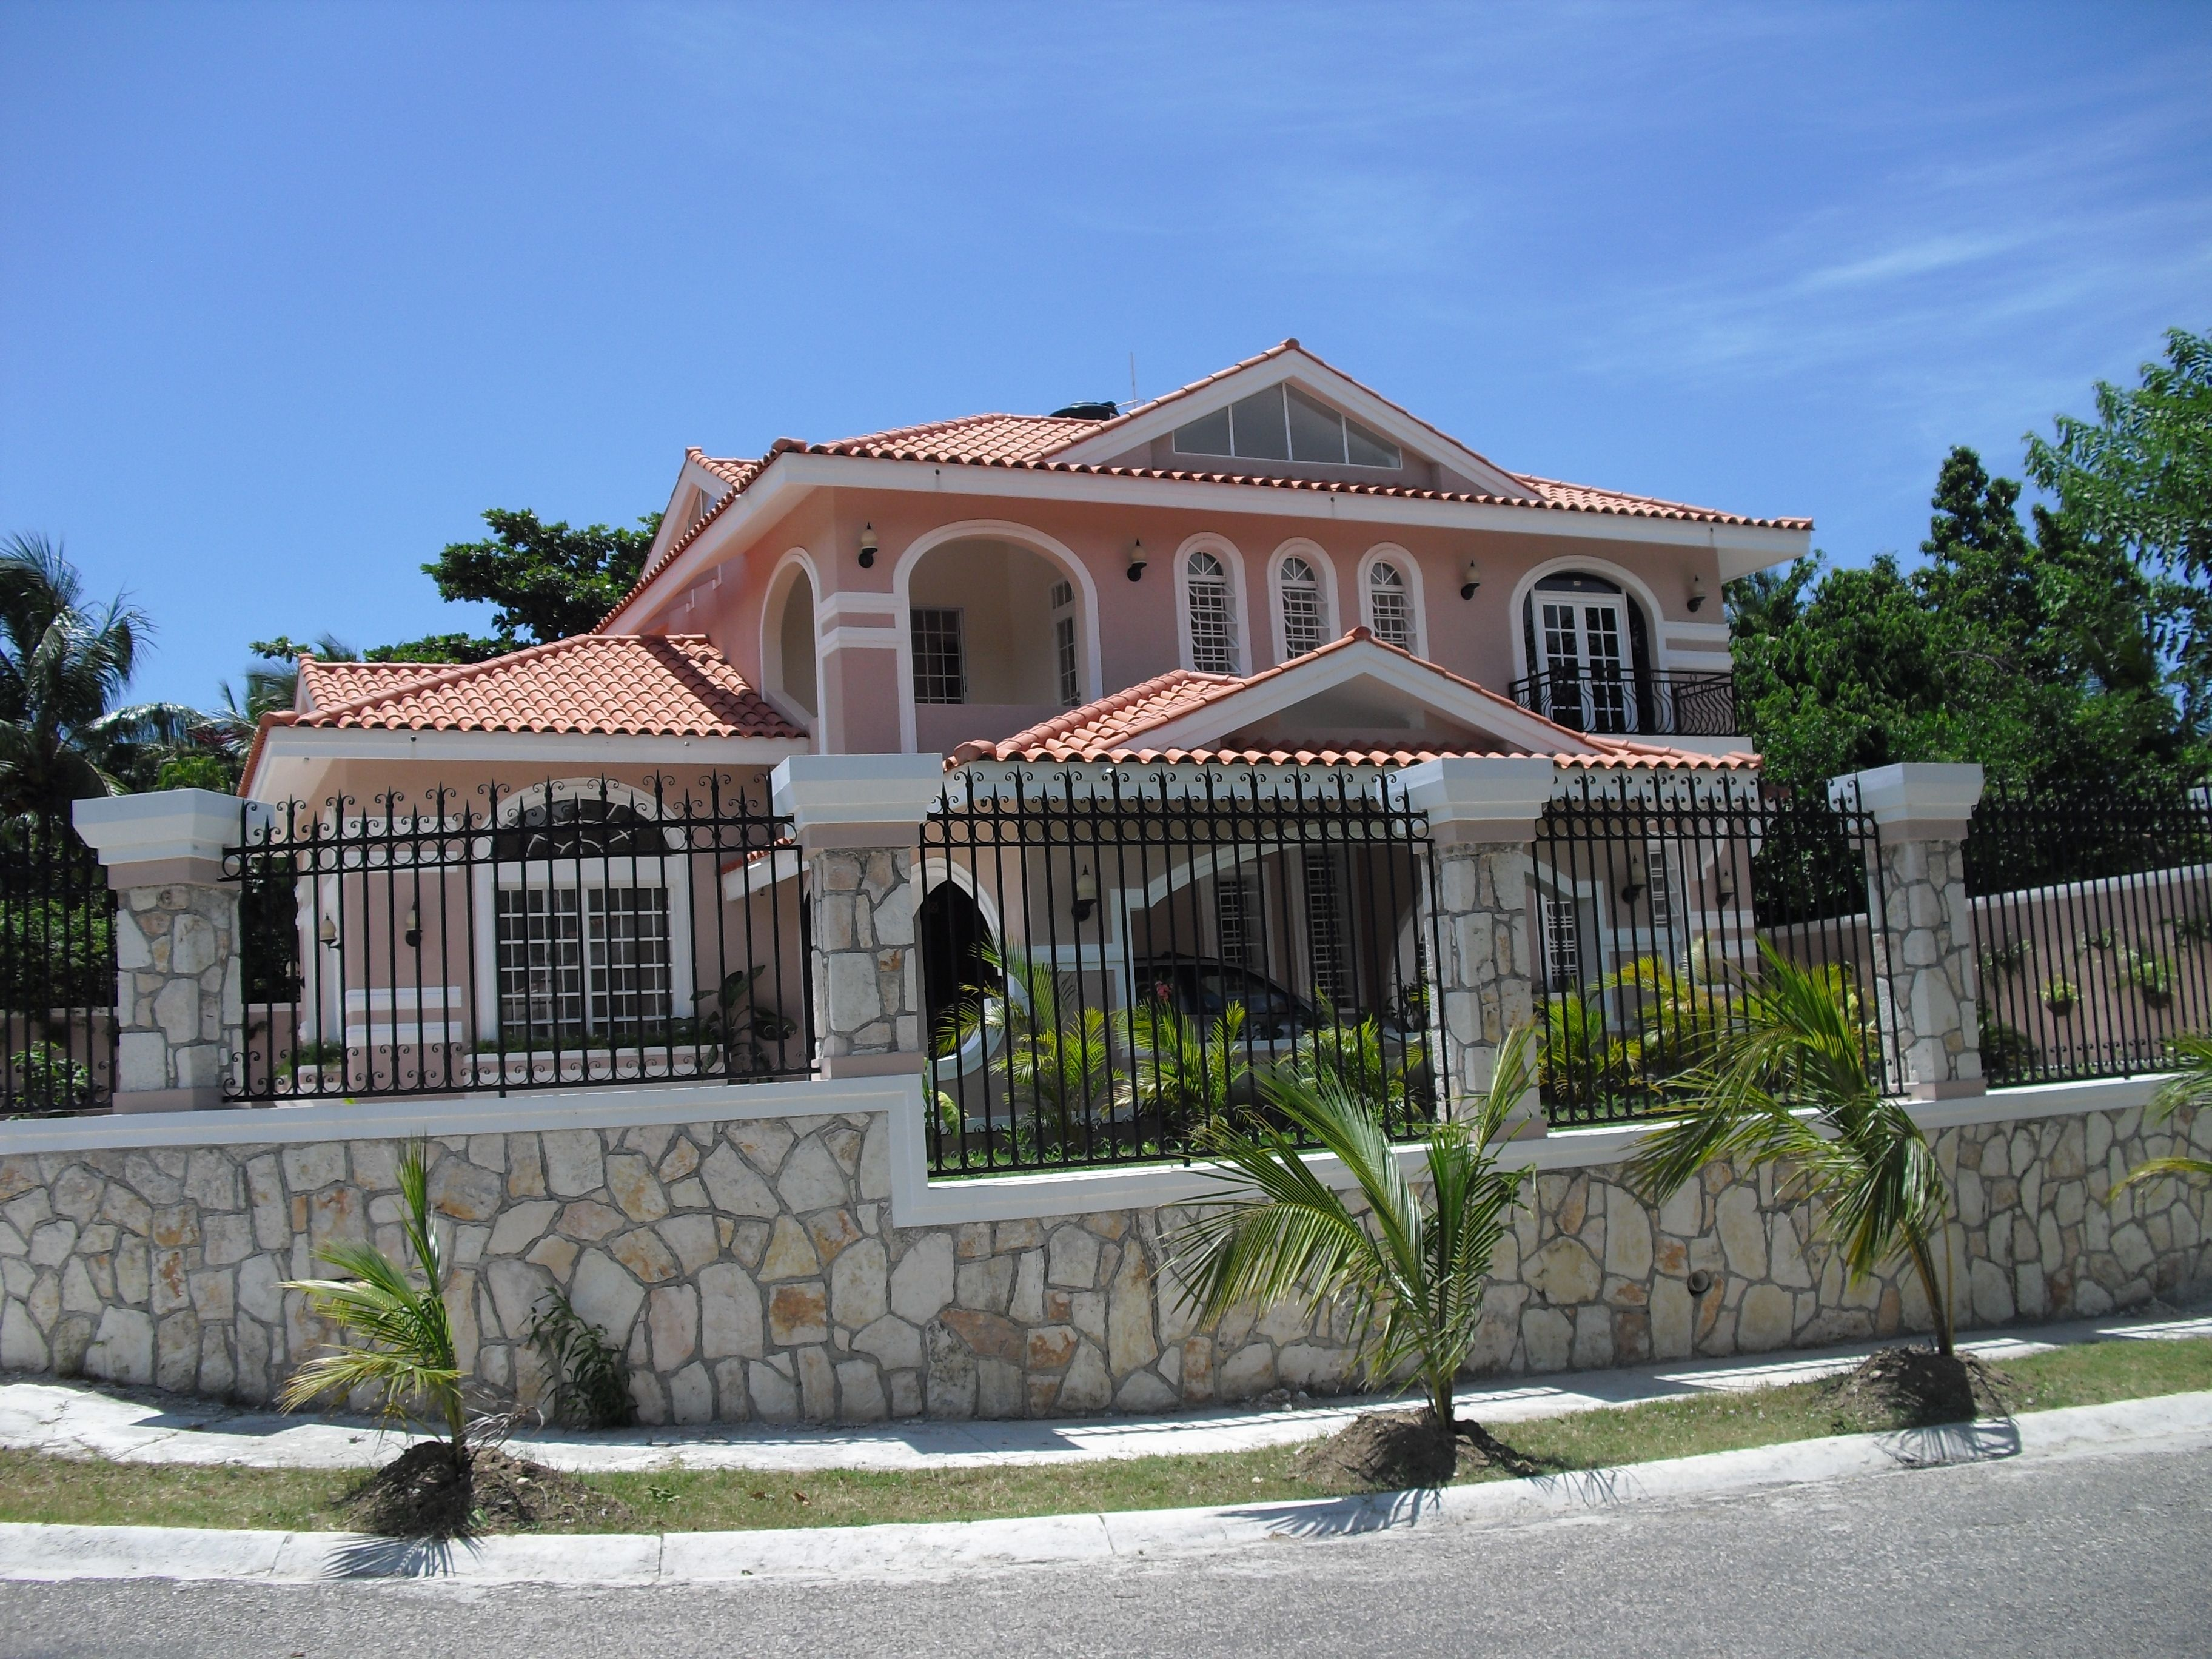 This Lovely Mansion Stands In The Belvil Area Of